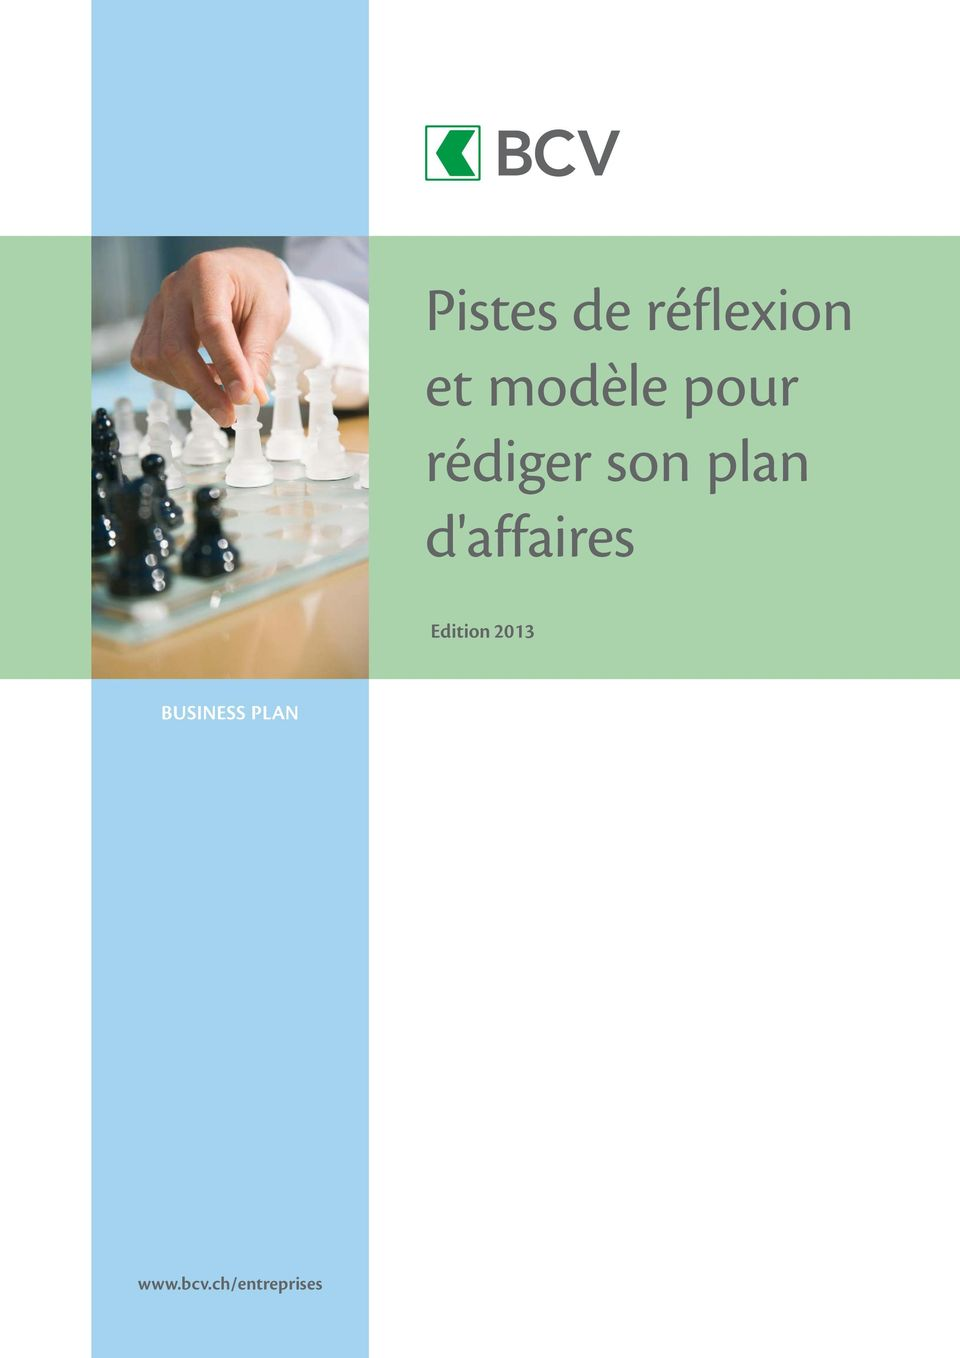 plan d'affaires Edition